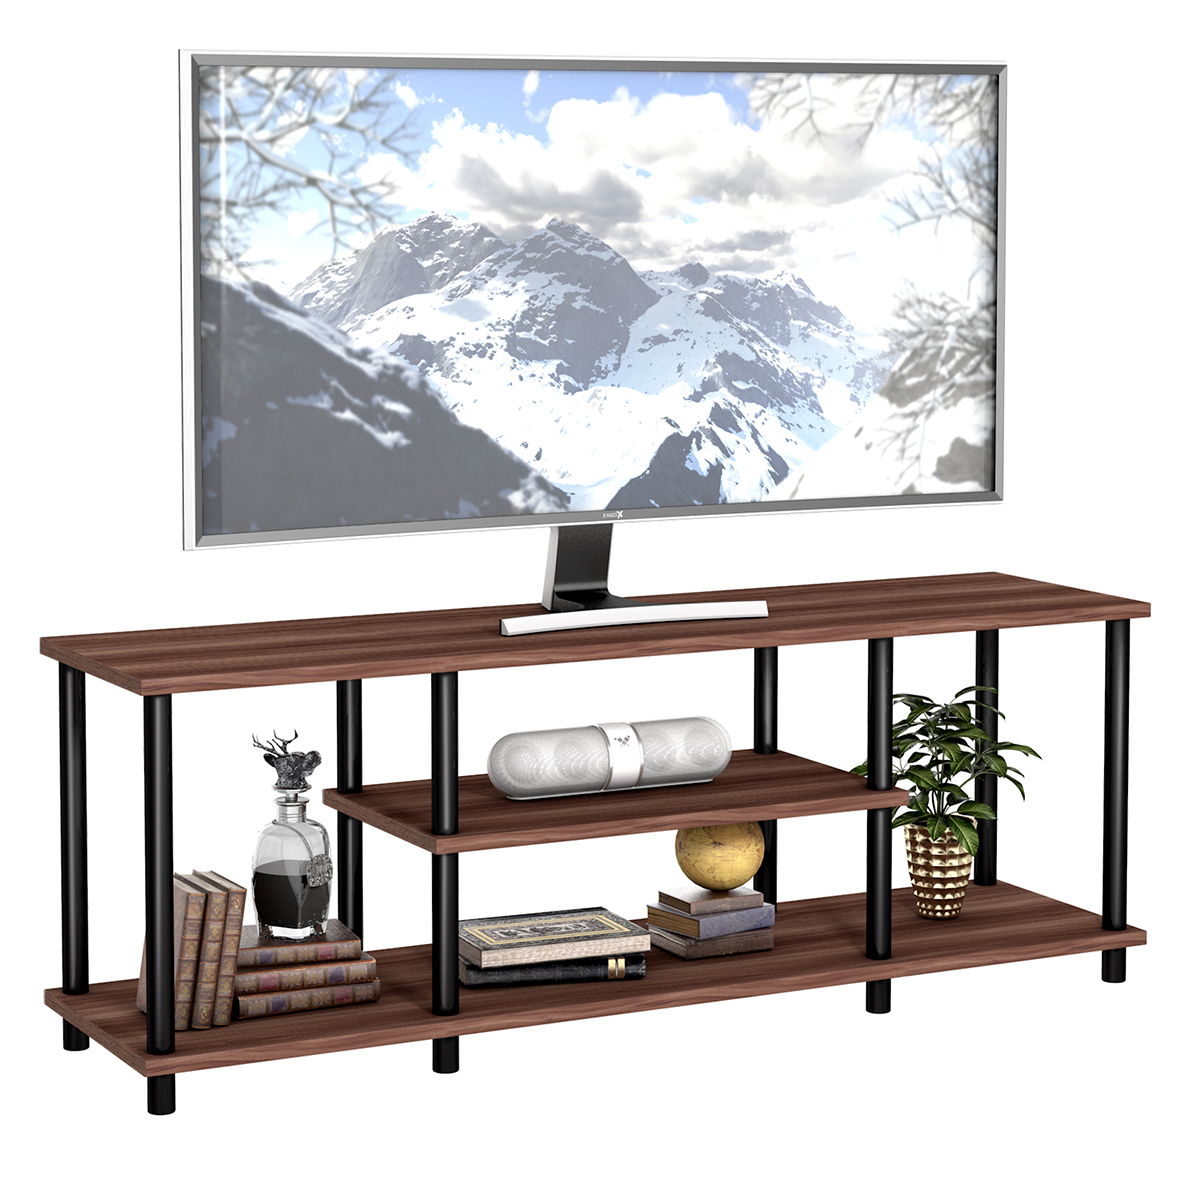 3 Tier Wood Tv Stand Media Game Console Storage Cabinet With Regard To Popular Tier Entertainment Tv Stands In Black (View 1 of 10)